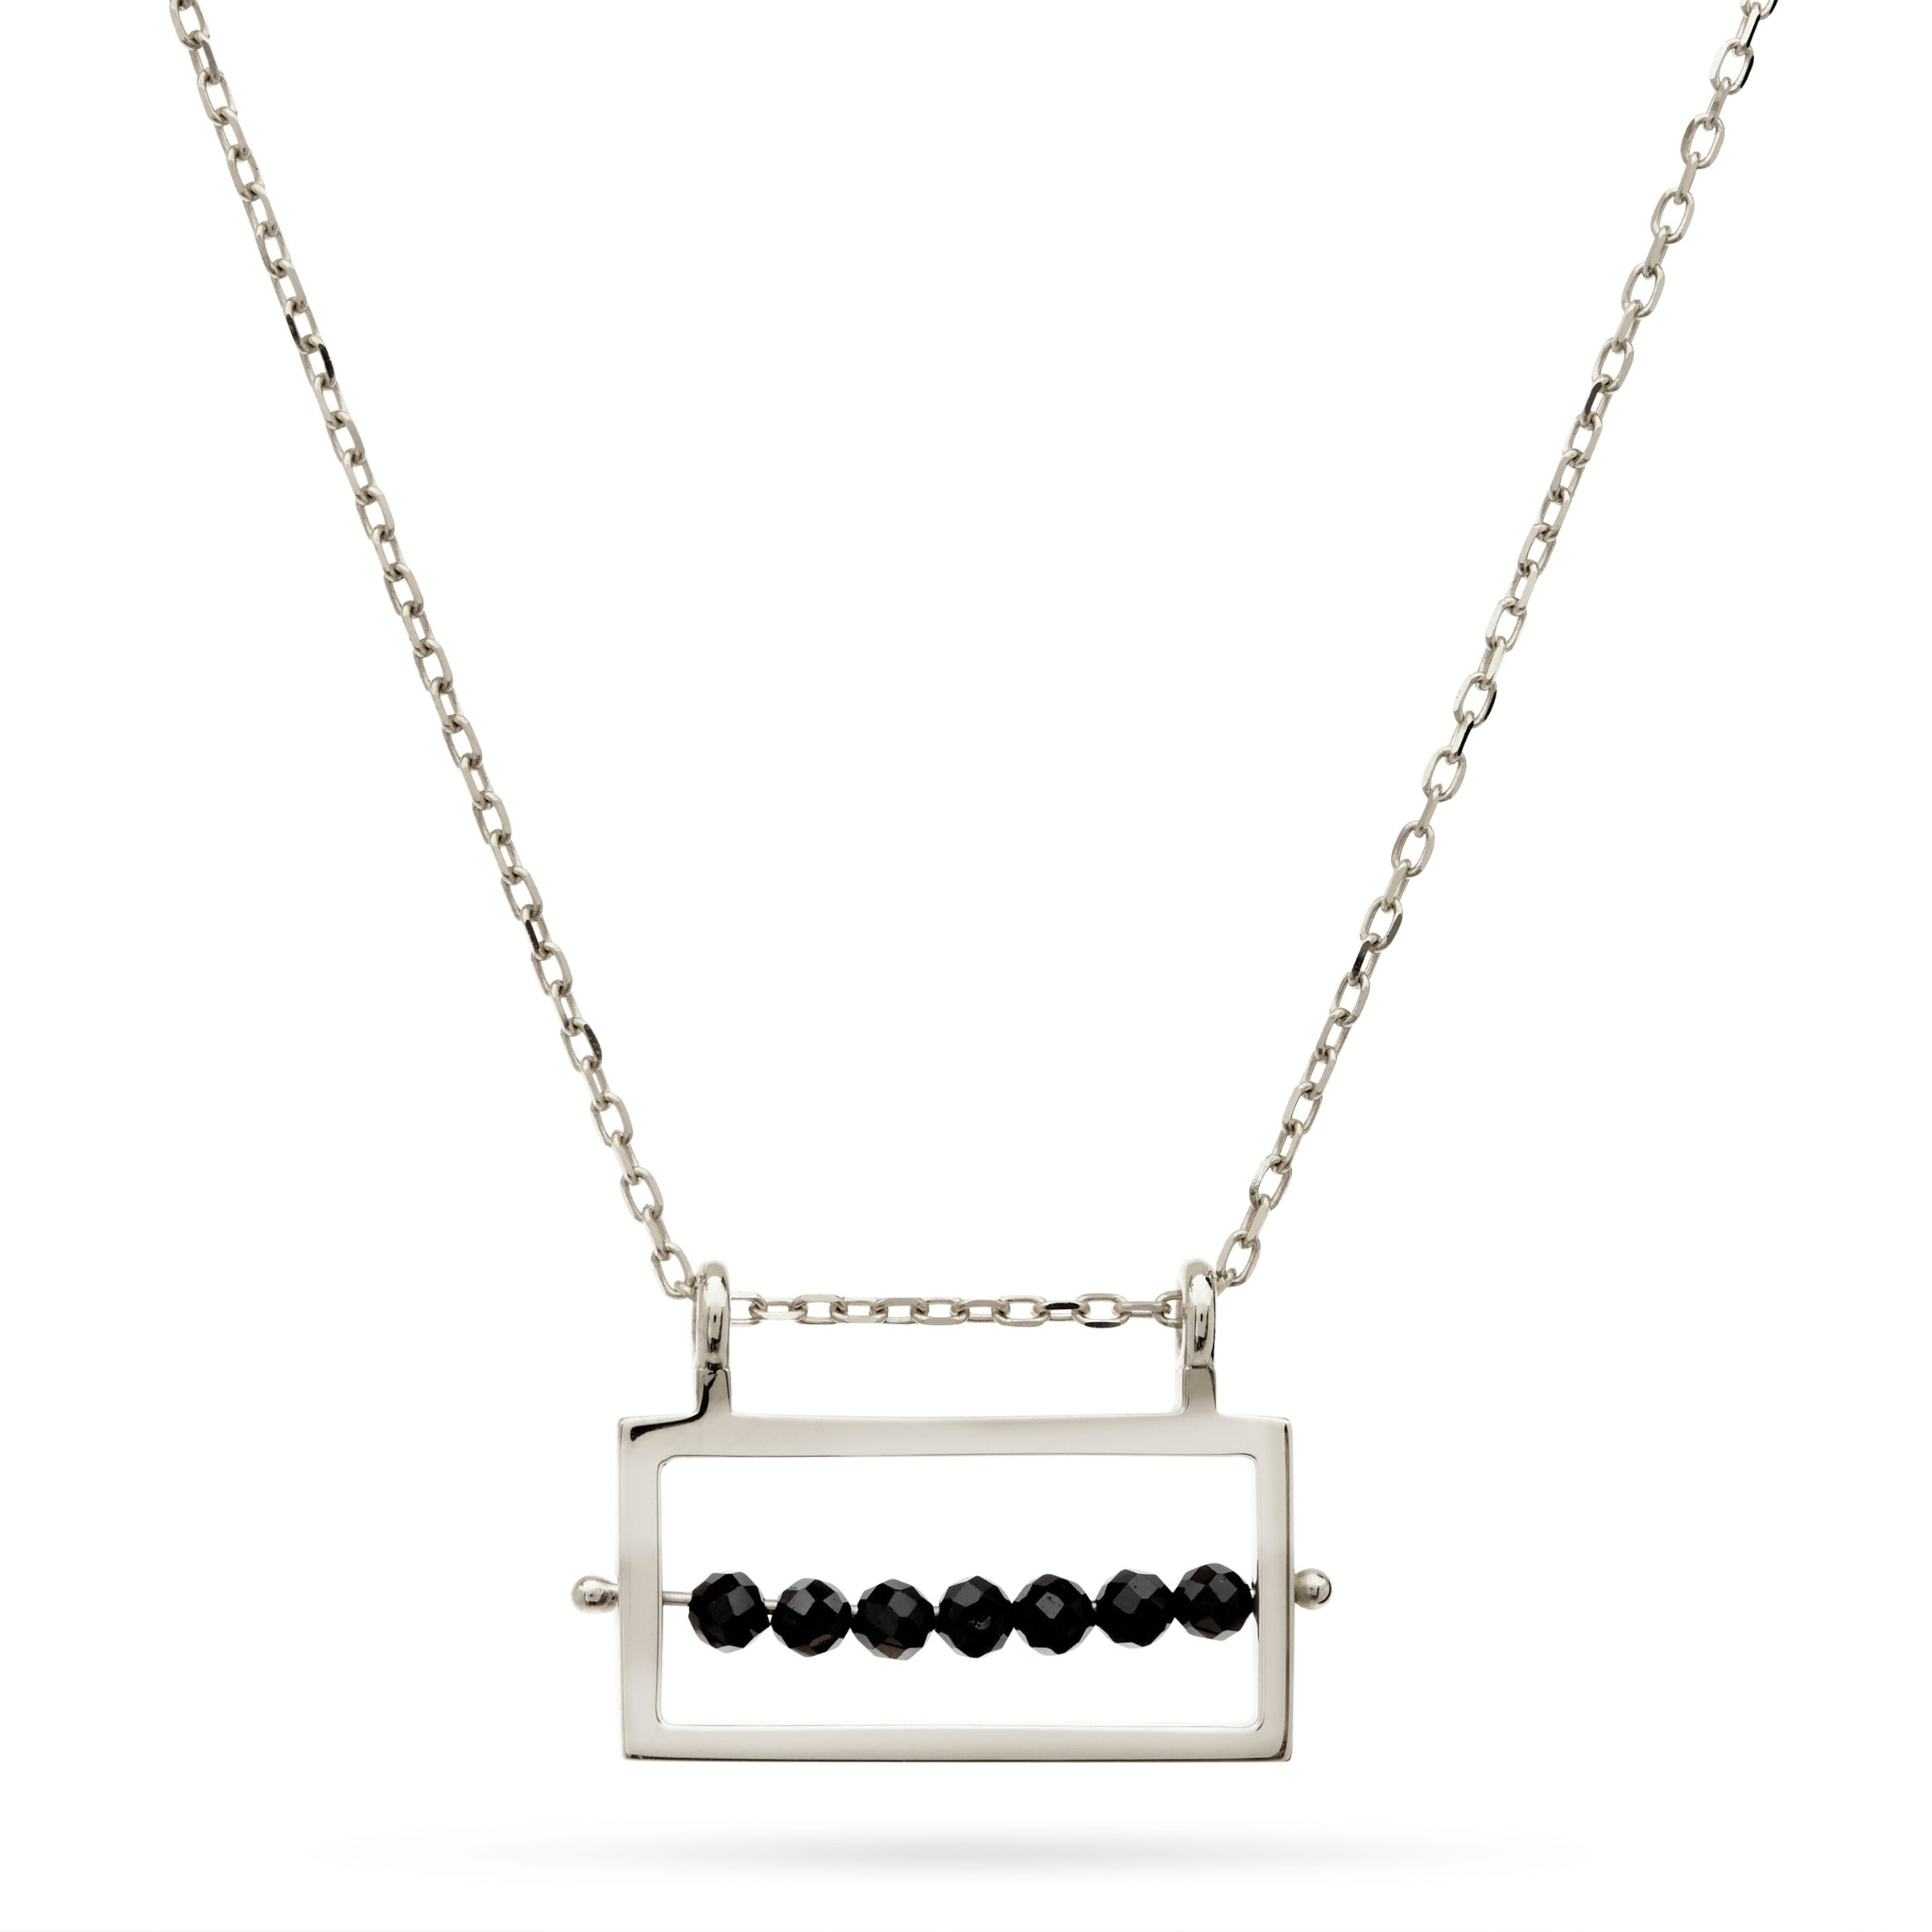 Silver Abacus Necklace by Luke Rose